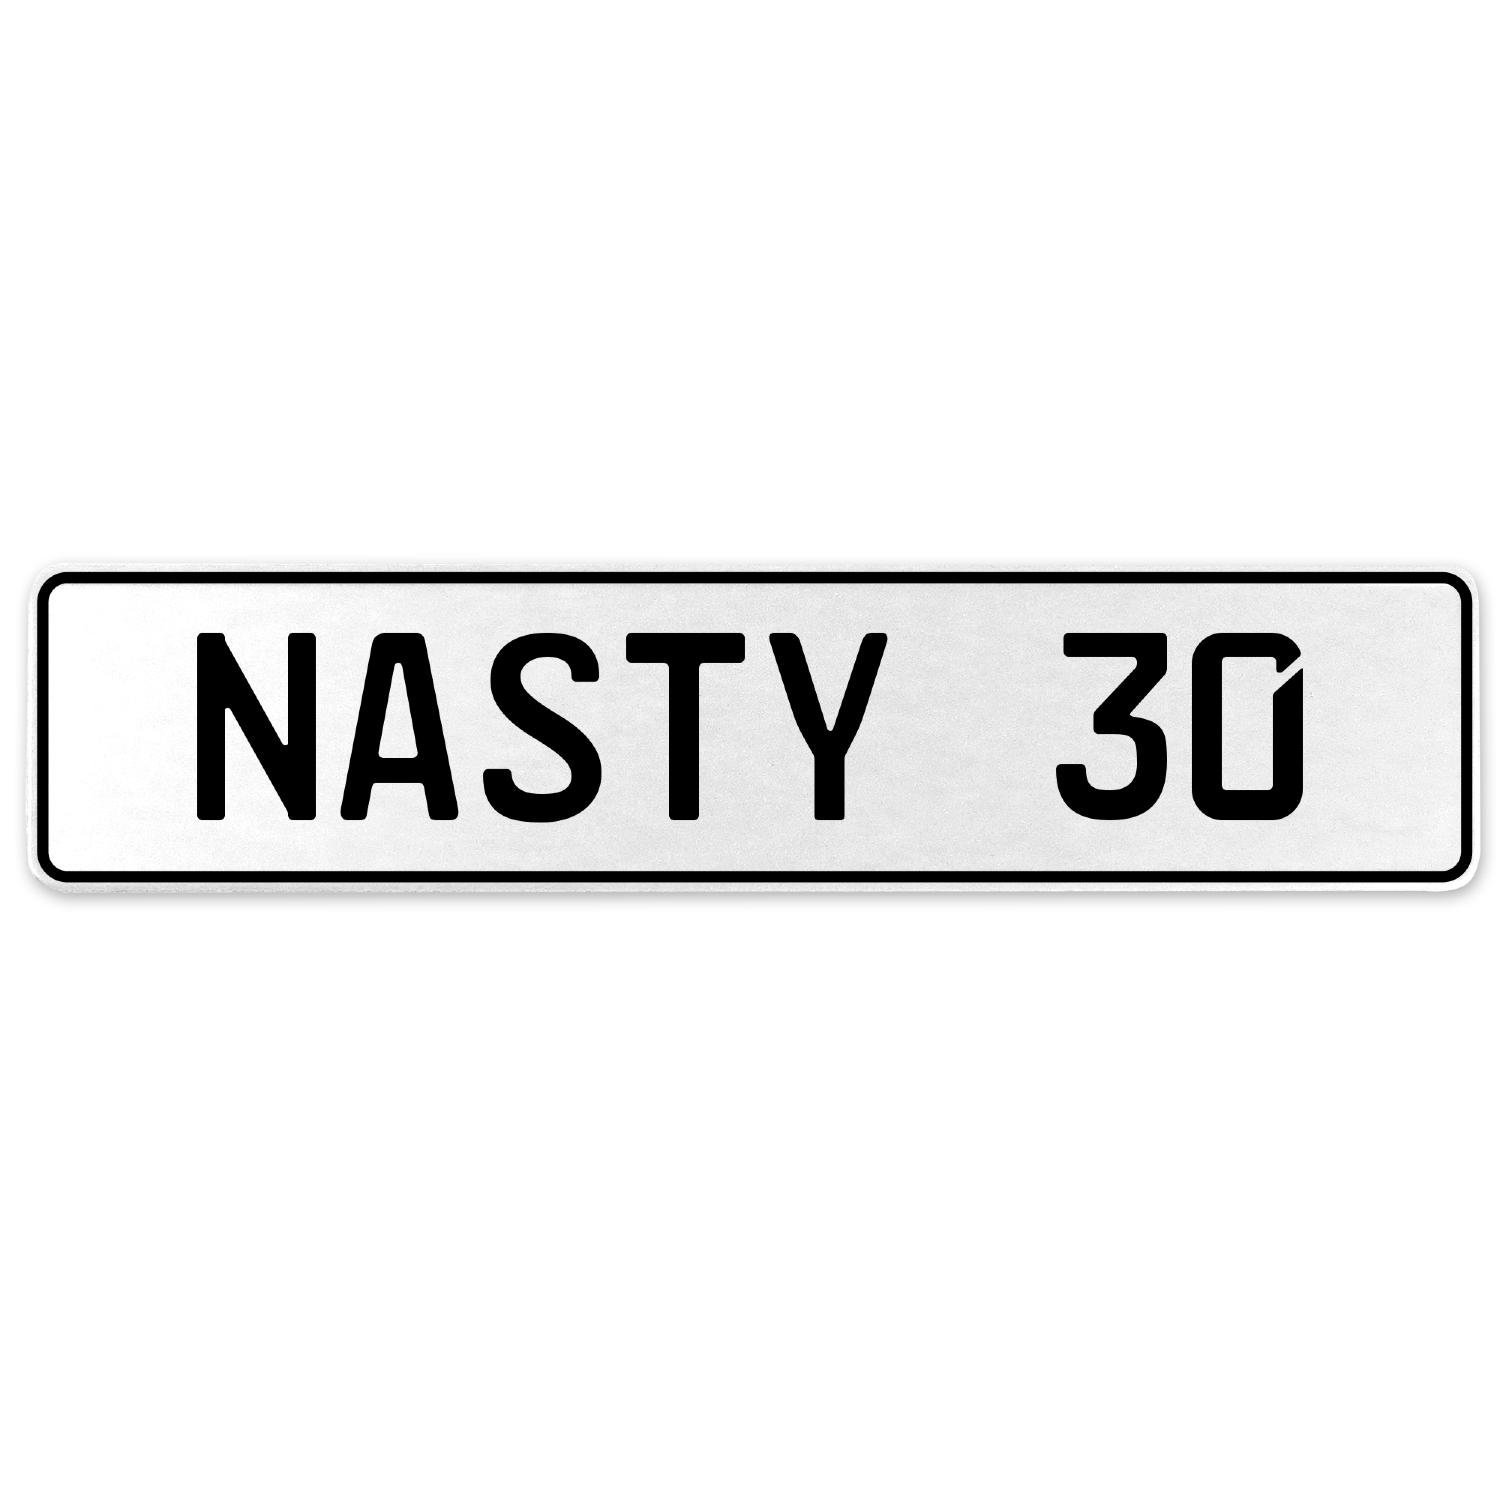 Vintage Parts 556904 Nasty 30 White Stamped Aluminum European License Plate